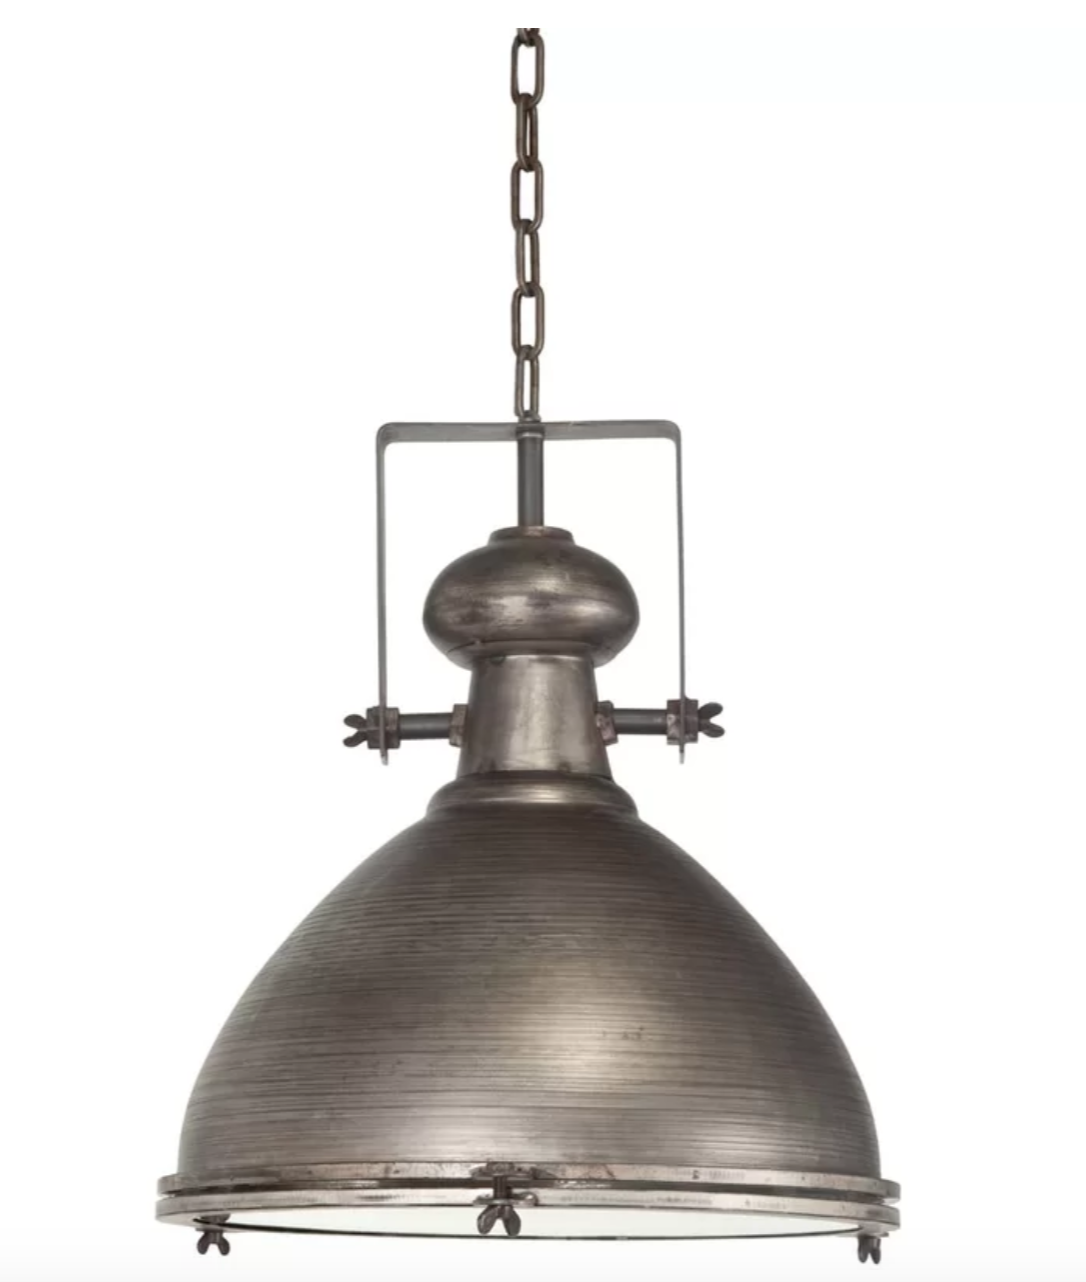 Farmhouse Dome Light.png